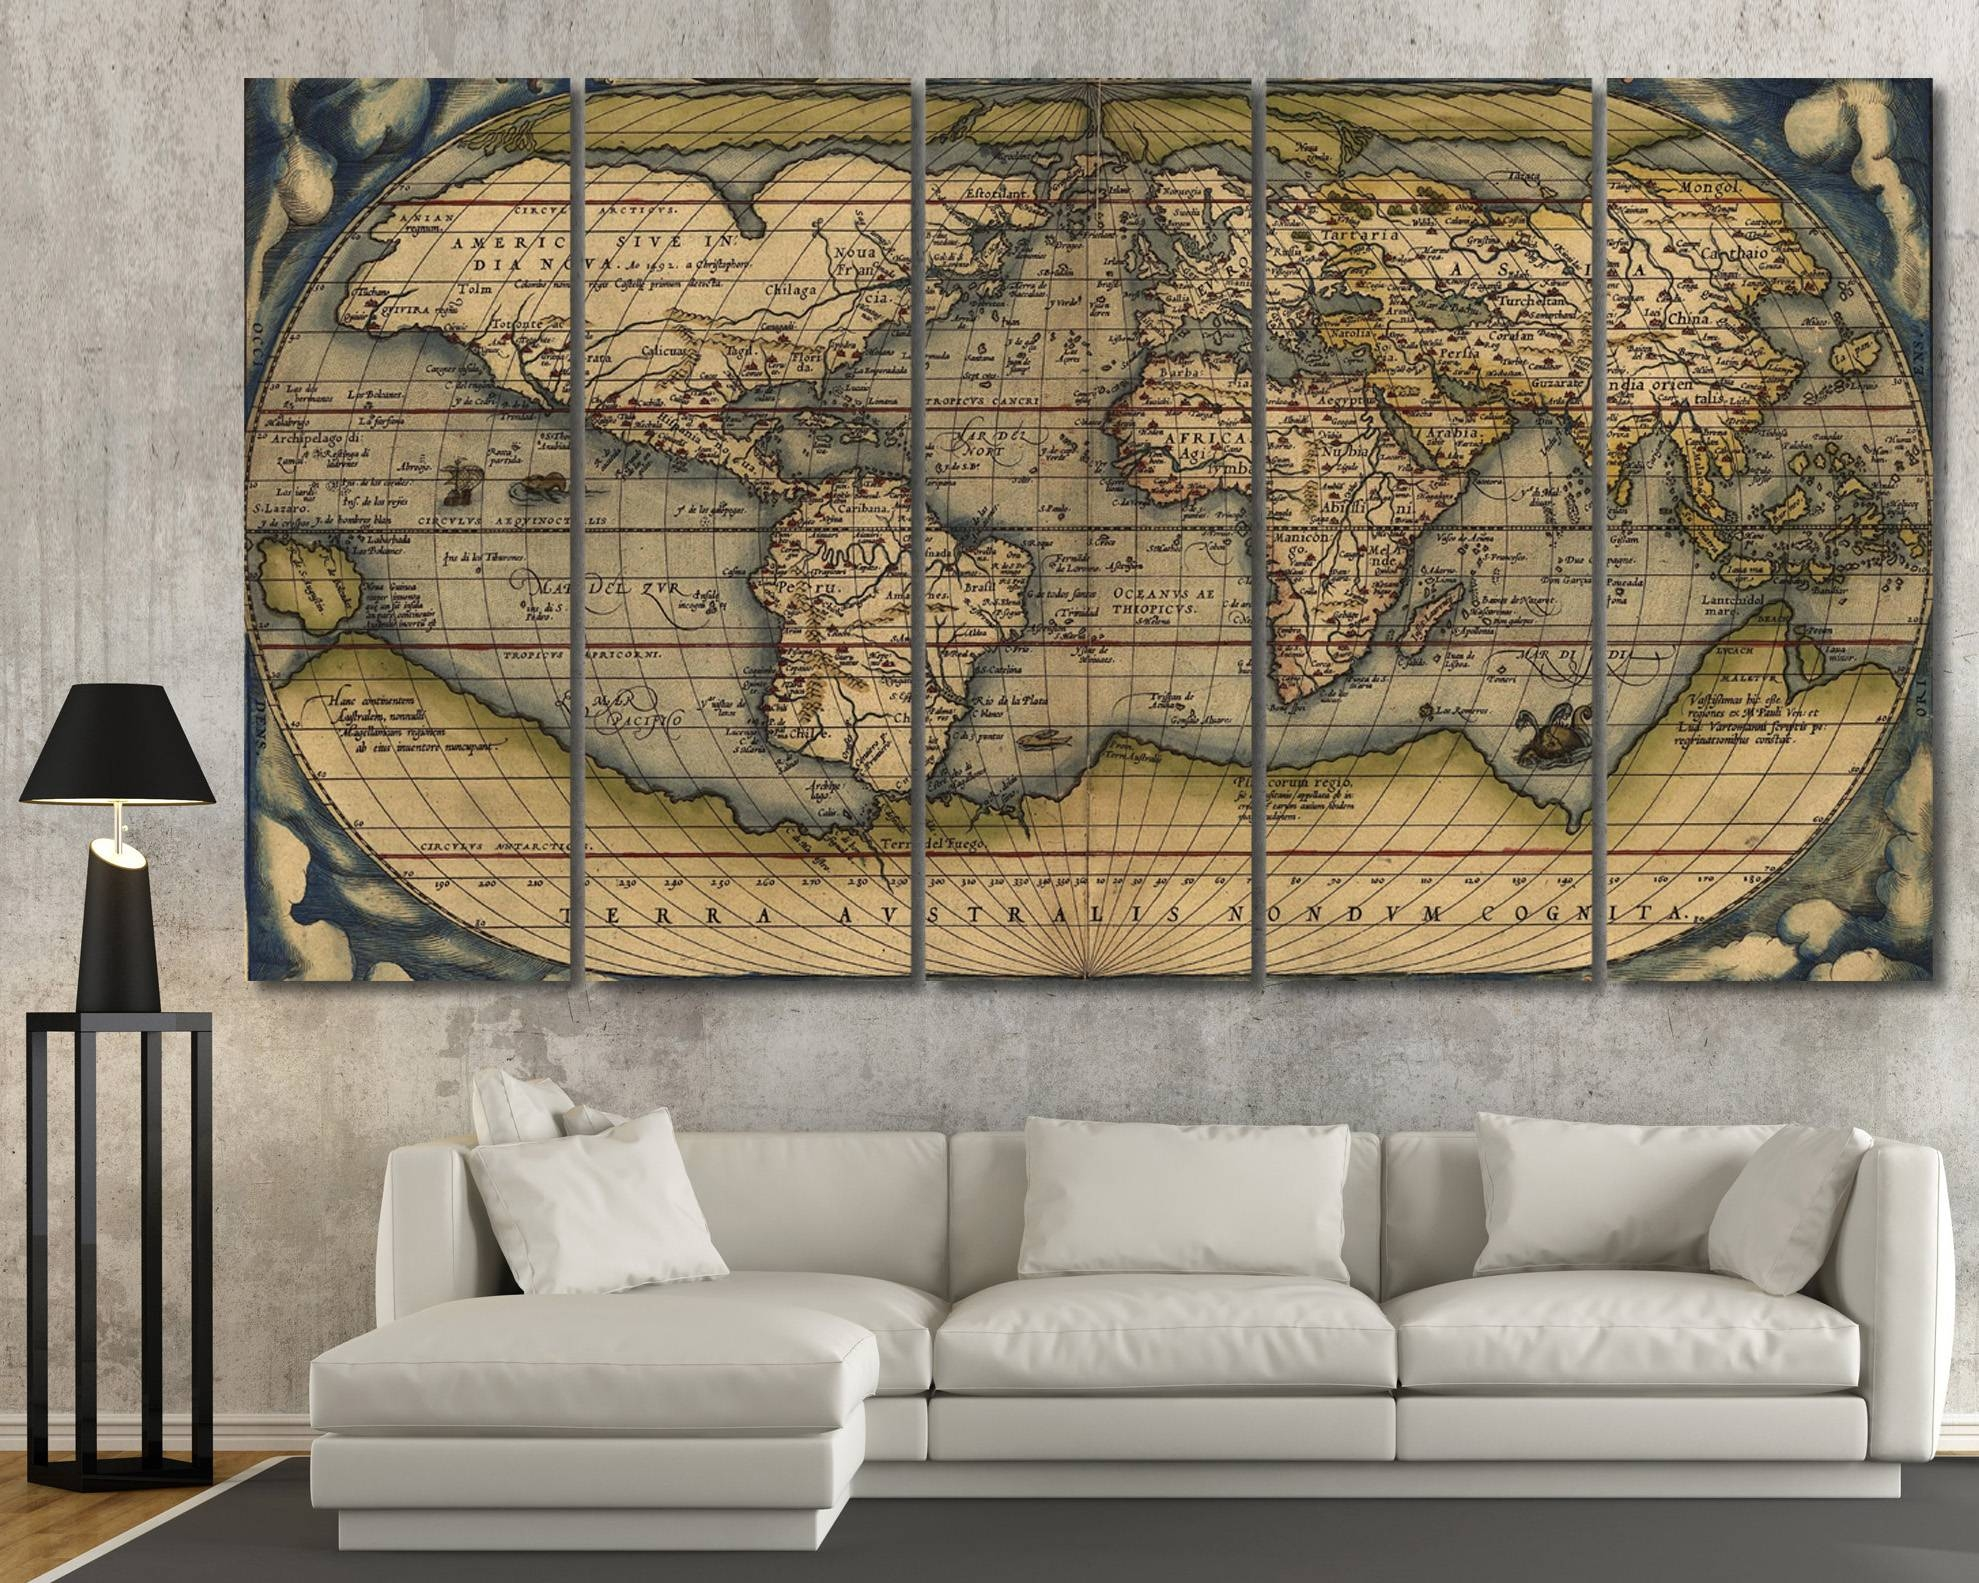 Large Vintage Wall Art Old World Map At Texelprintart Intended For Current Vintage Map Wall Art (View 2 of 20)